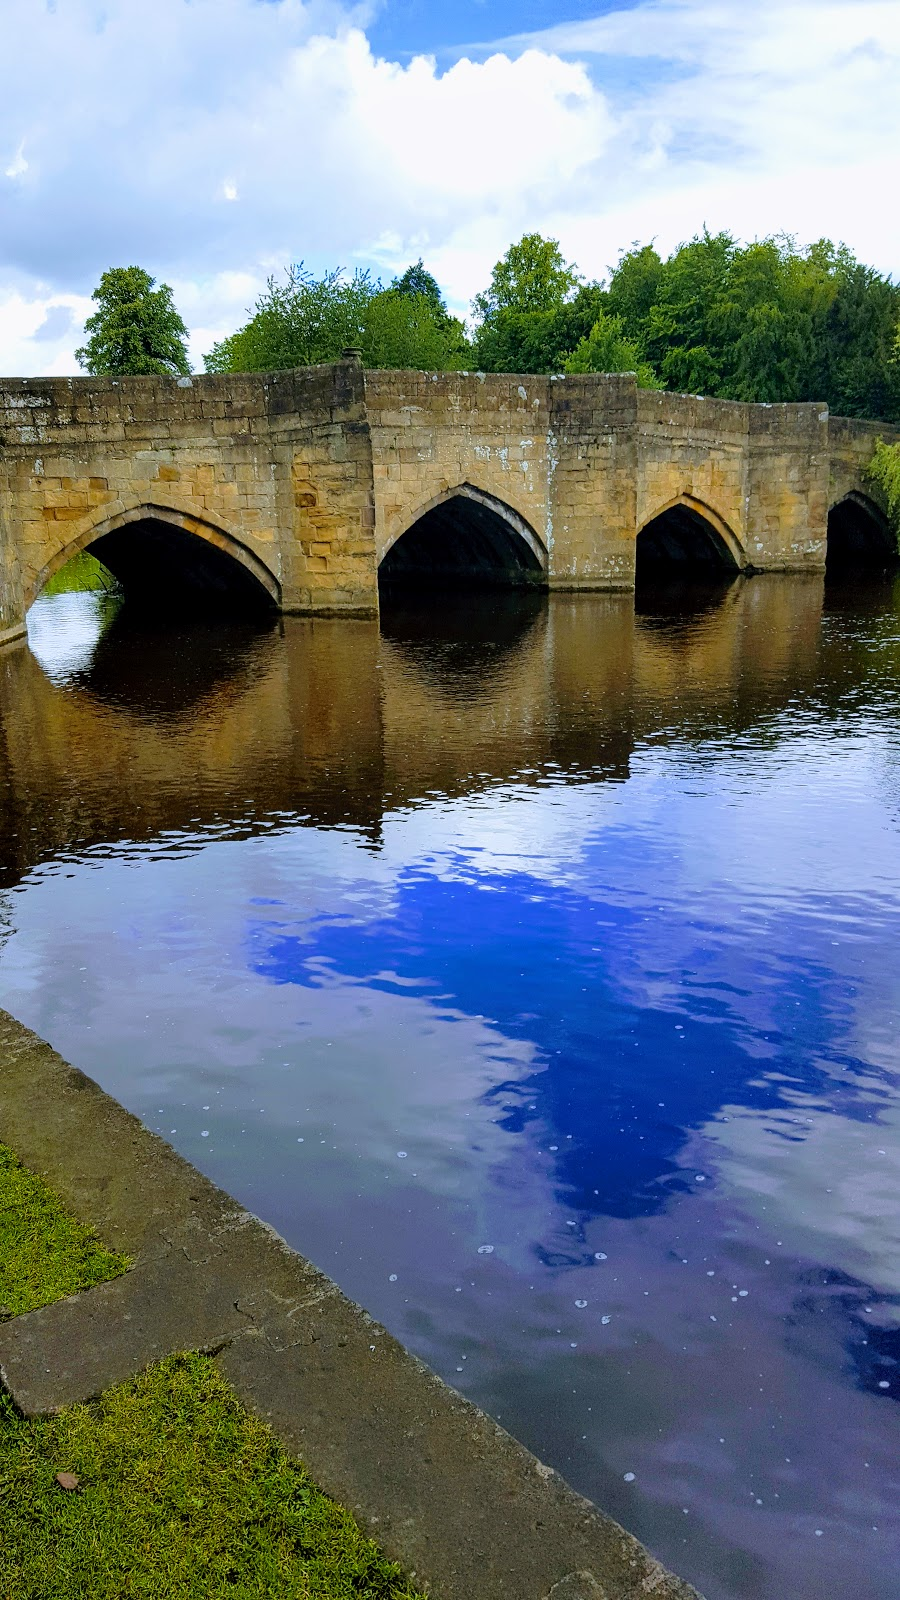 Bridge in Bakewell